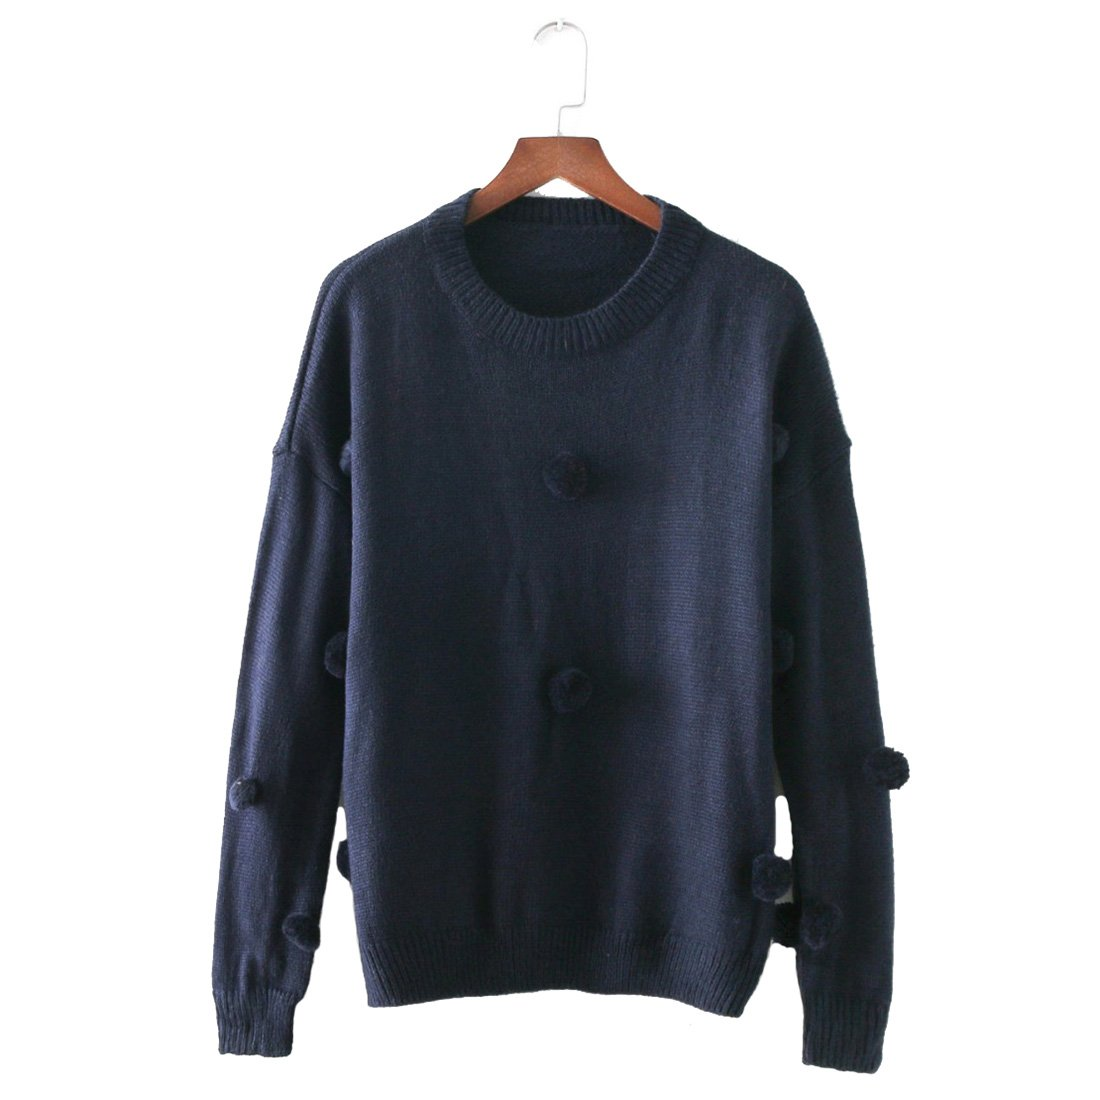 FARCOKO 2017 Winter Sweater Women Vintage American Style Loose Embroidery Ball O-Neck Women Sweaters Pullovers Women Tops (Navy Blue, m)